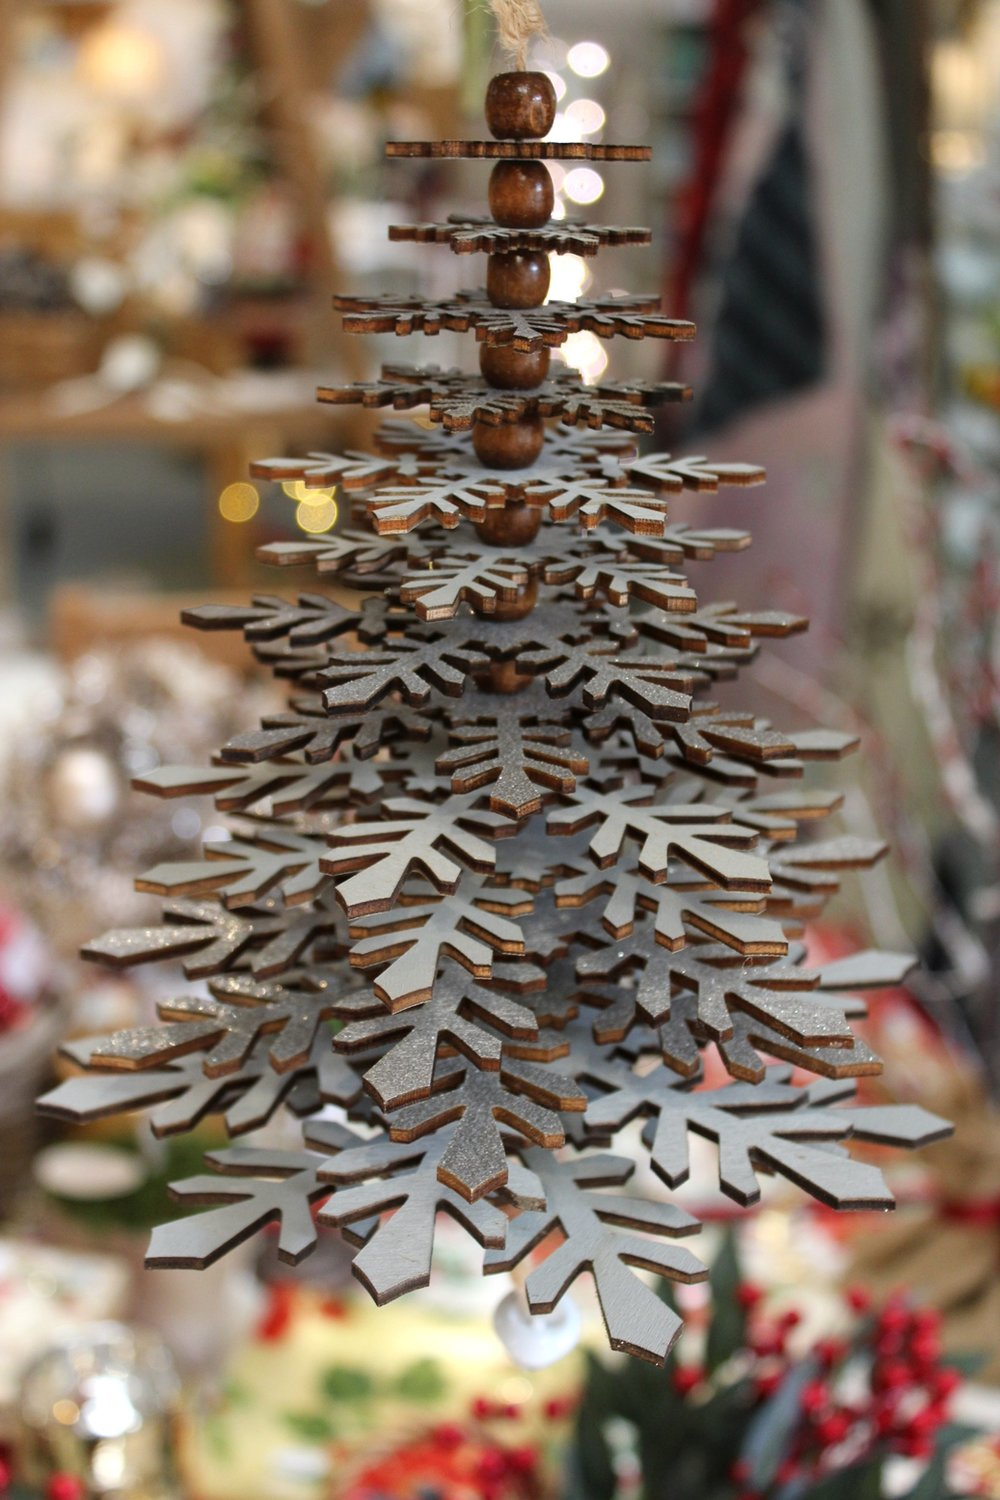 Layered Christmas Tree - €18.00